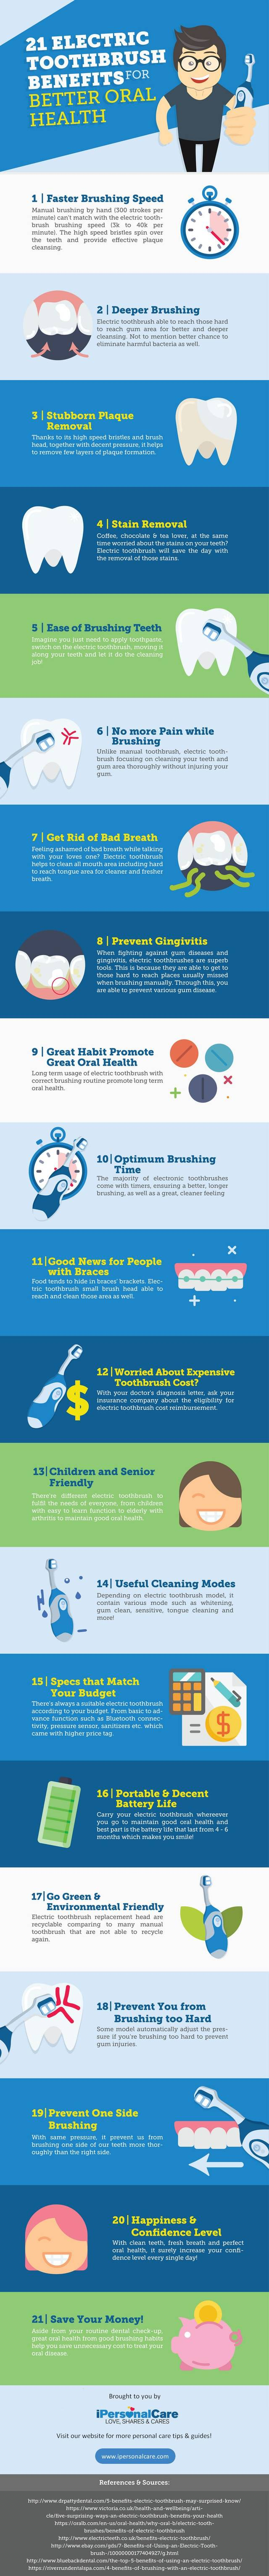 21 electric toothbrush benefits for better oral health